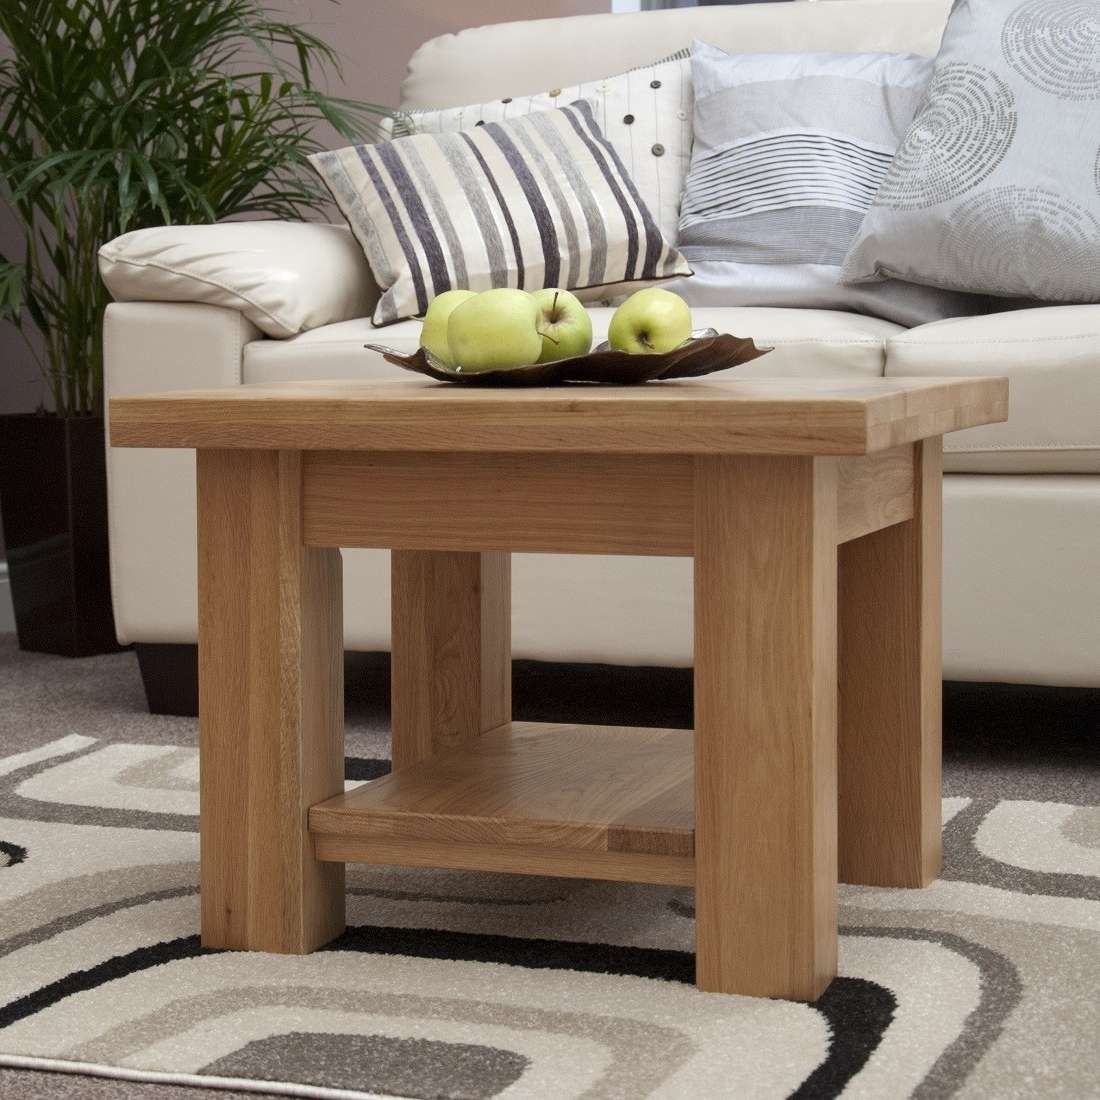 Oak Furniture Uk Throughout Most Recent Torino Coffee Tables (Gallery 1 of 20)